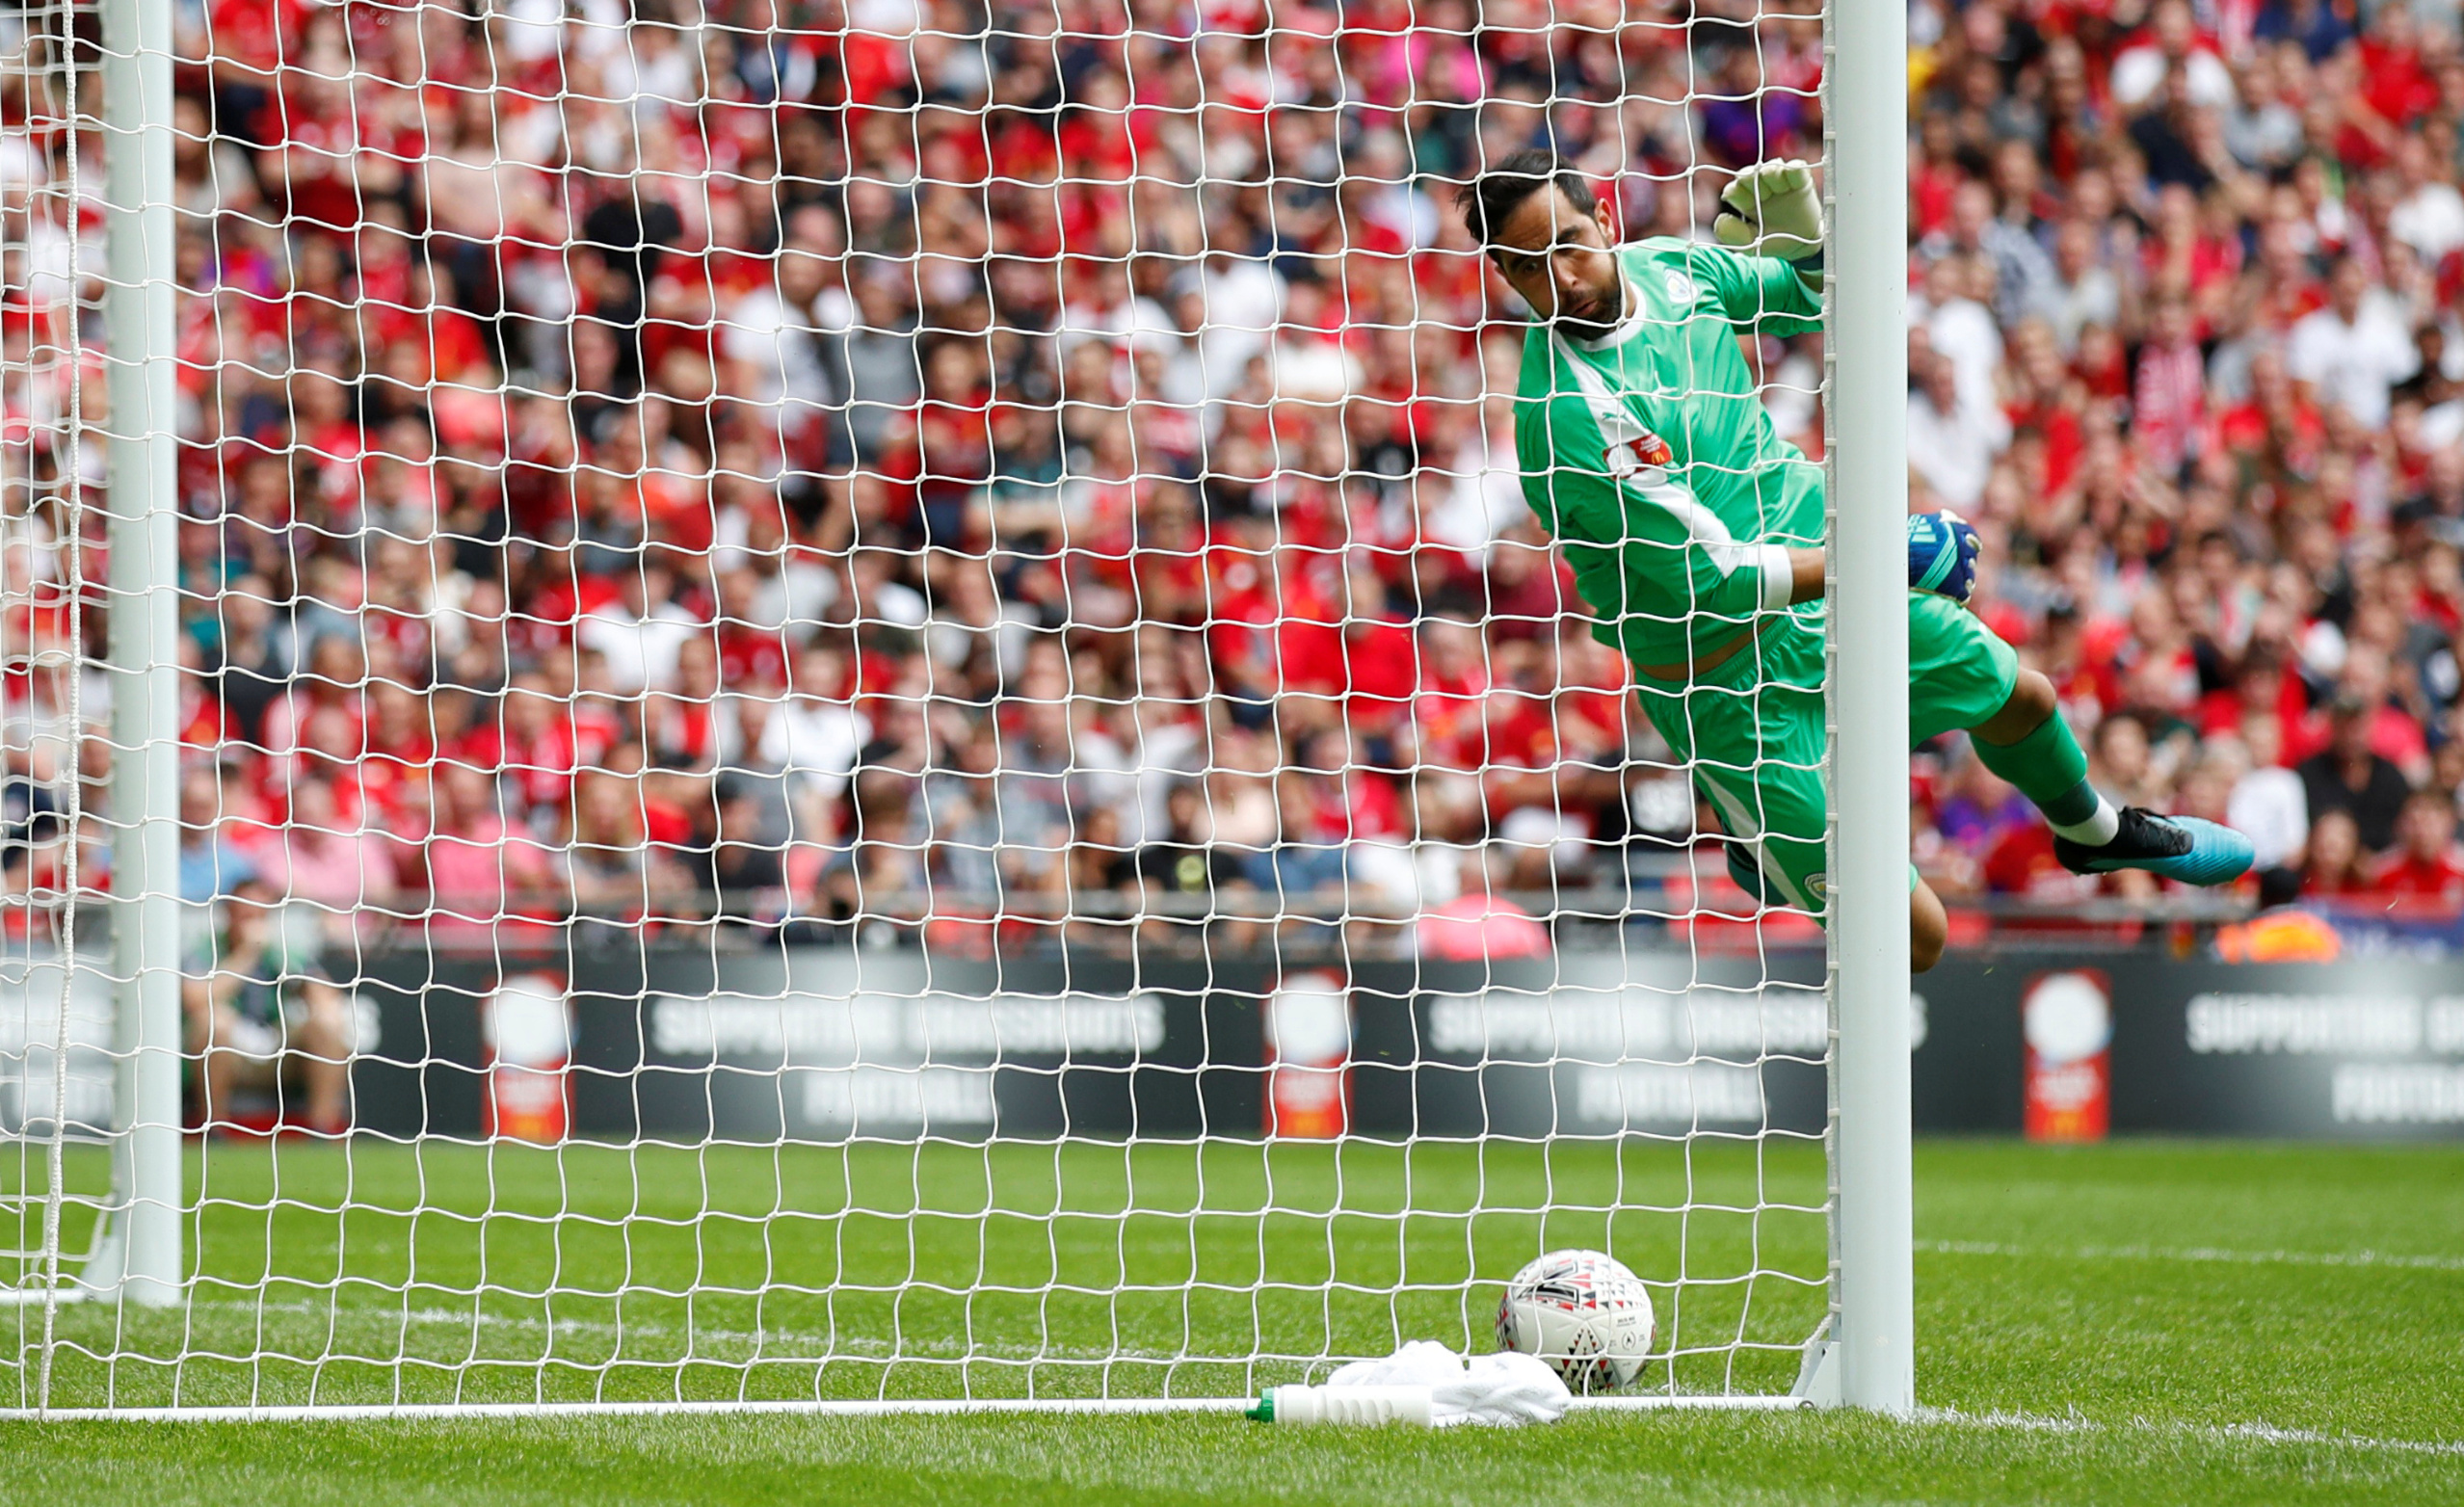 Soccer Football - FA Community Shield - Manchester City v Liverpool - Wembley Stadium, London, Britain - August 4, 2019  Manchester City's Claudio Bravo in action as a header from Liverpool's Virgil van Dijk lands on the goal line  REUTERS/David Klein